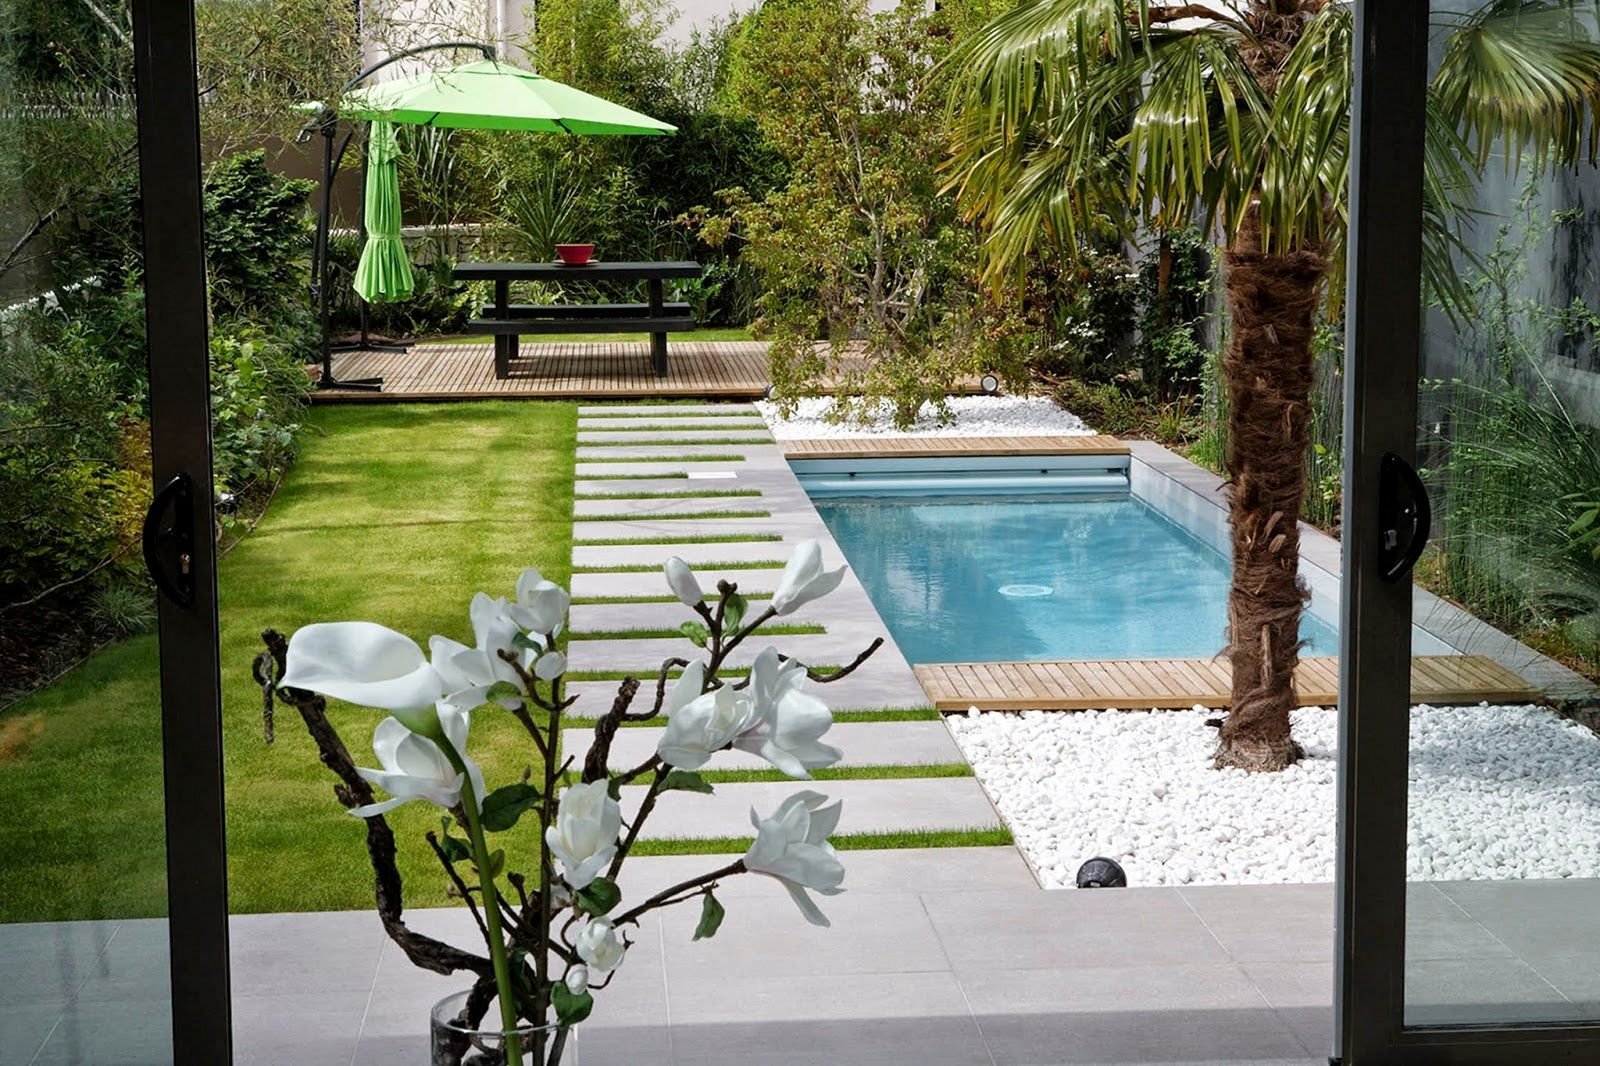 15 Incredible Small Landscaping Design With Mini Pool Ideas Small Backyard Pools Backyard Pool Landscaping Terrace Garden Design Mini pool in backyard